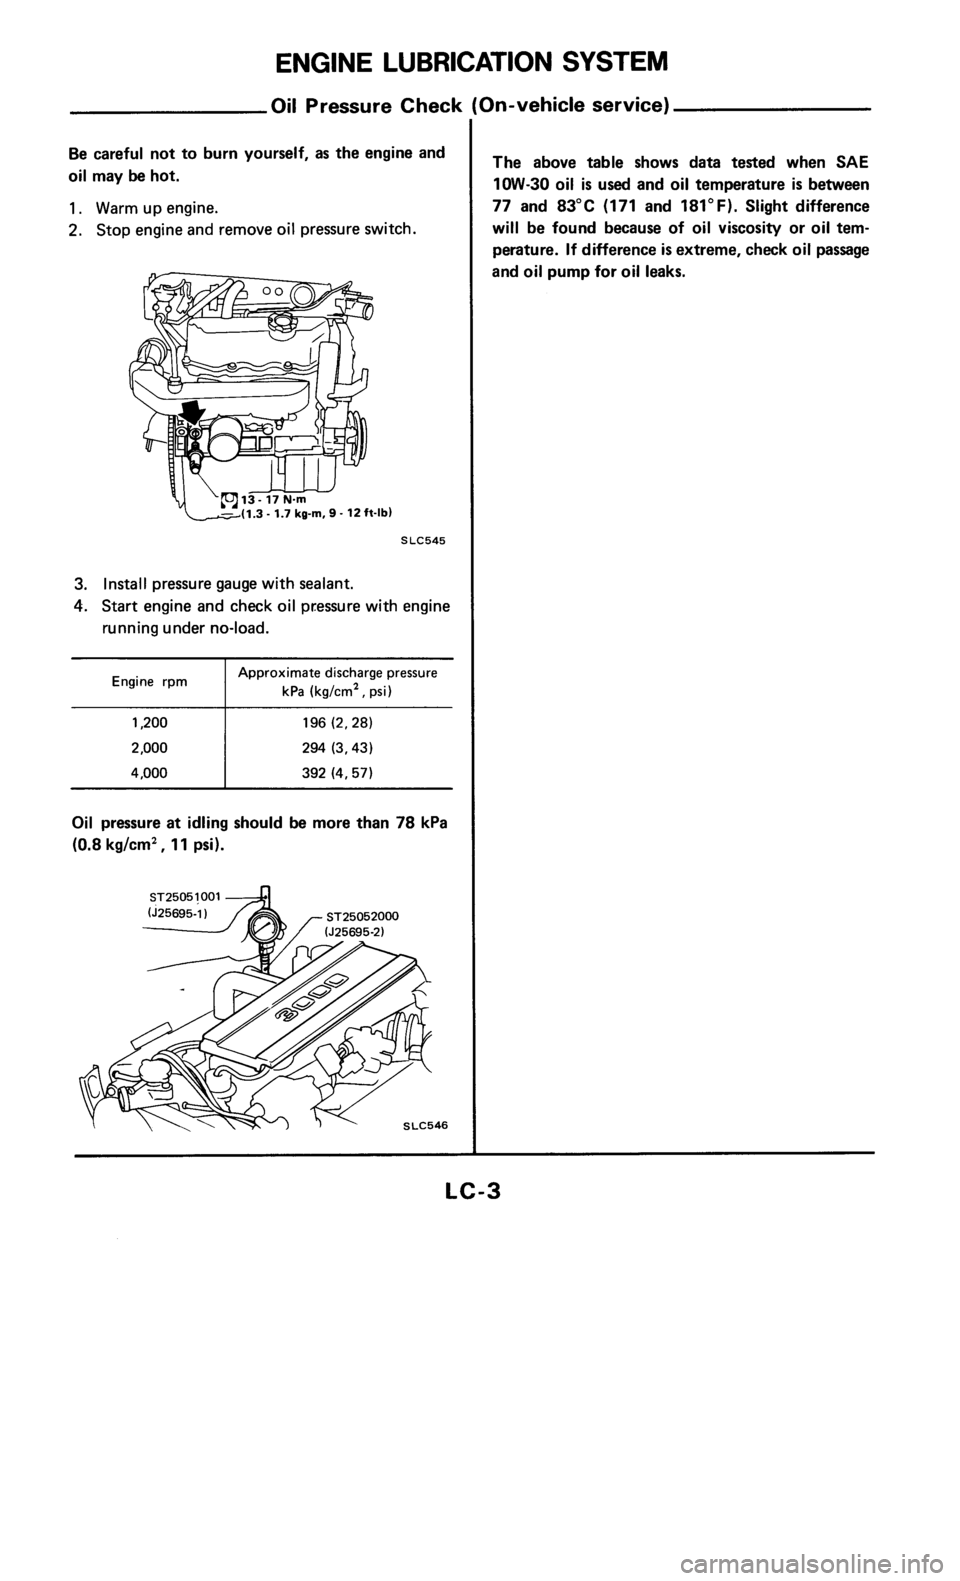 NISSAN 300ZX 1985 Z31 Engine Lubrication And Cooling System Workshop Manual, Page 3